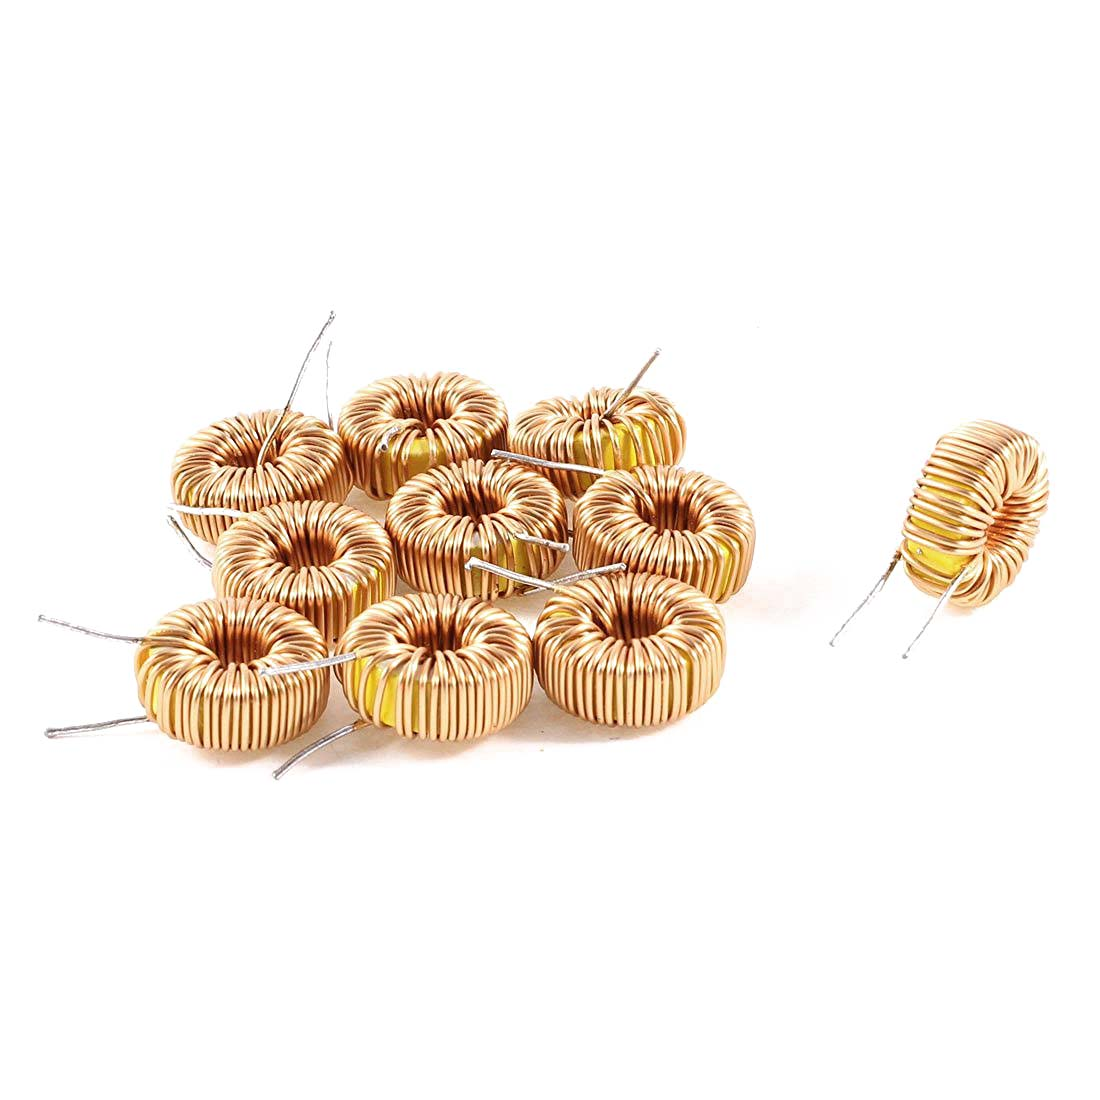 10 Pcs Toroid Core Inductor Wire Wind Wound 100uH 81mOhm 2A Coil rb6132 36 0m4 inductor mr li